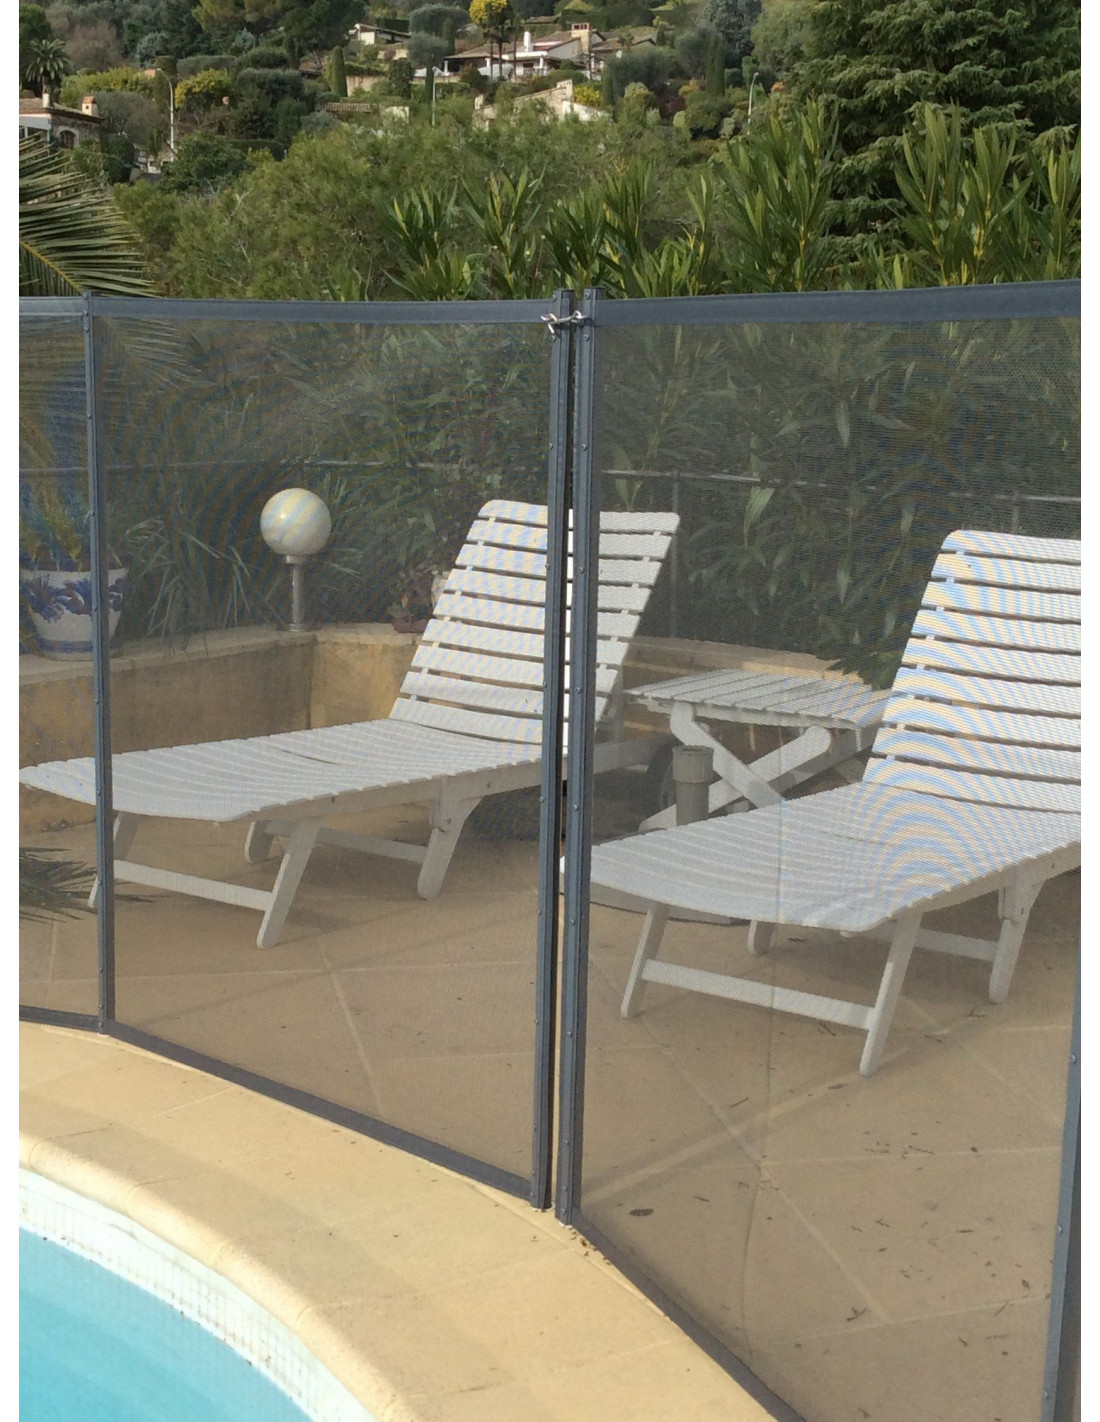 Barri re protection piscine beethoven grise avec piquets gris for Barriere de protection piscine